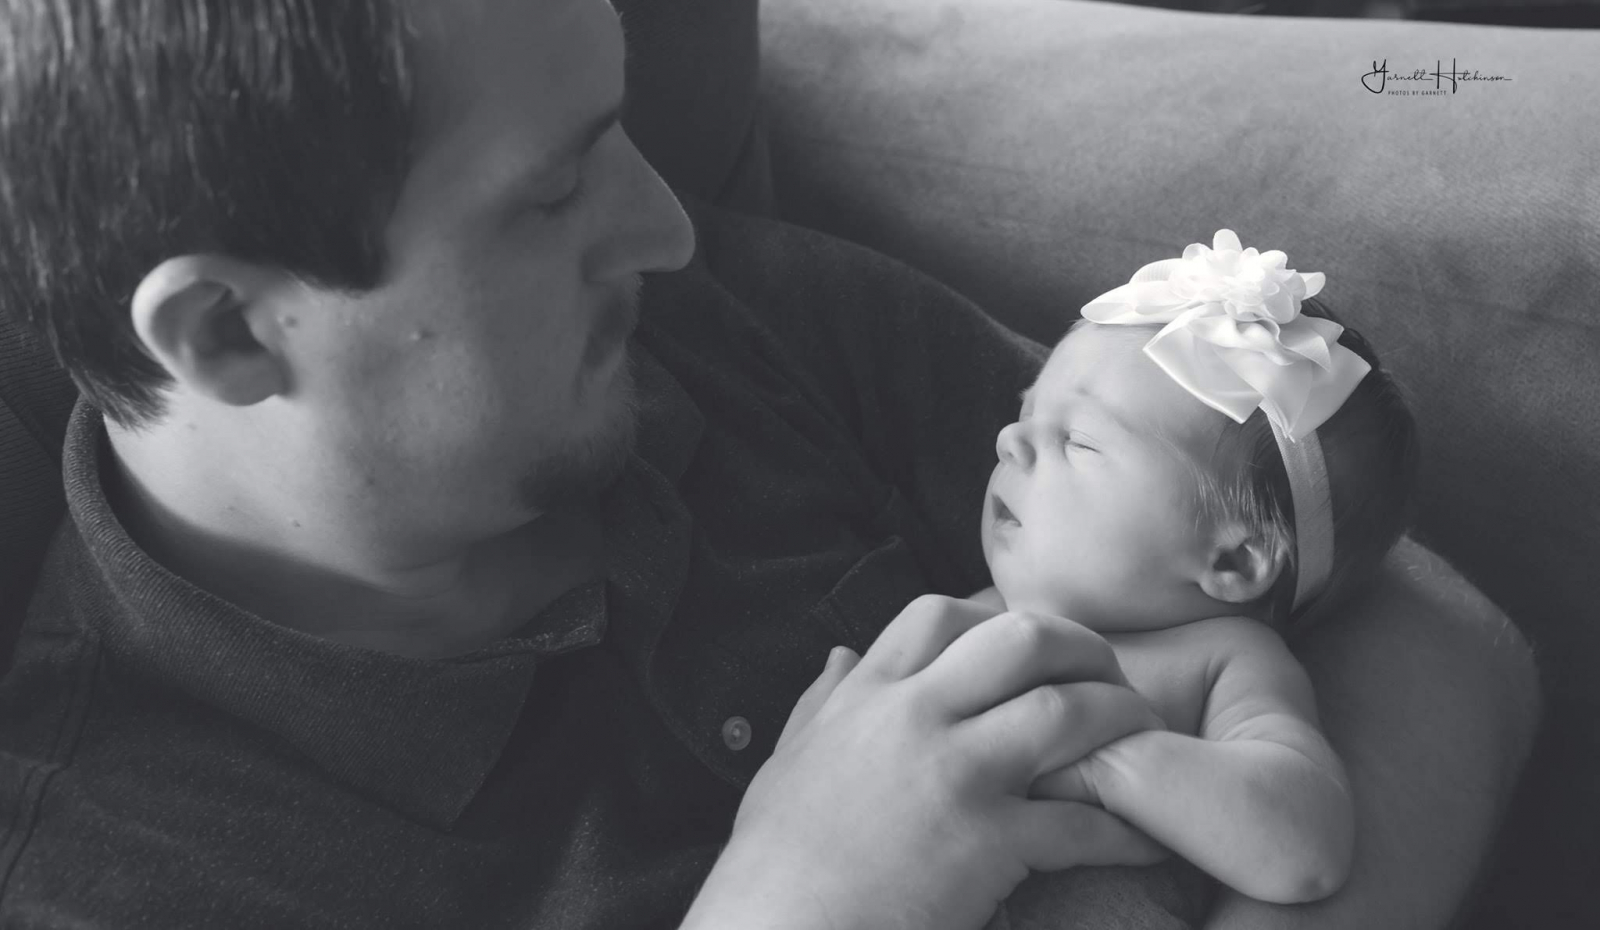 End of article: Father adoring his new little girl